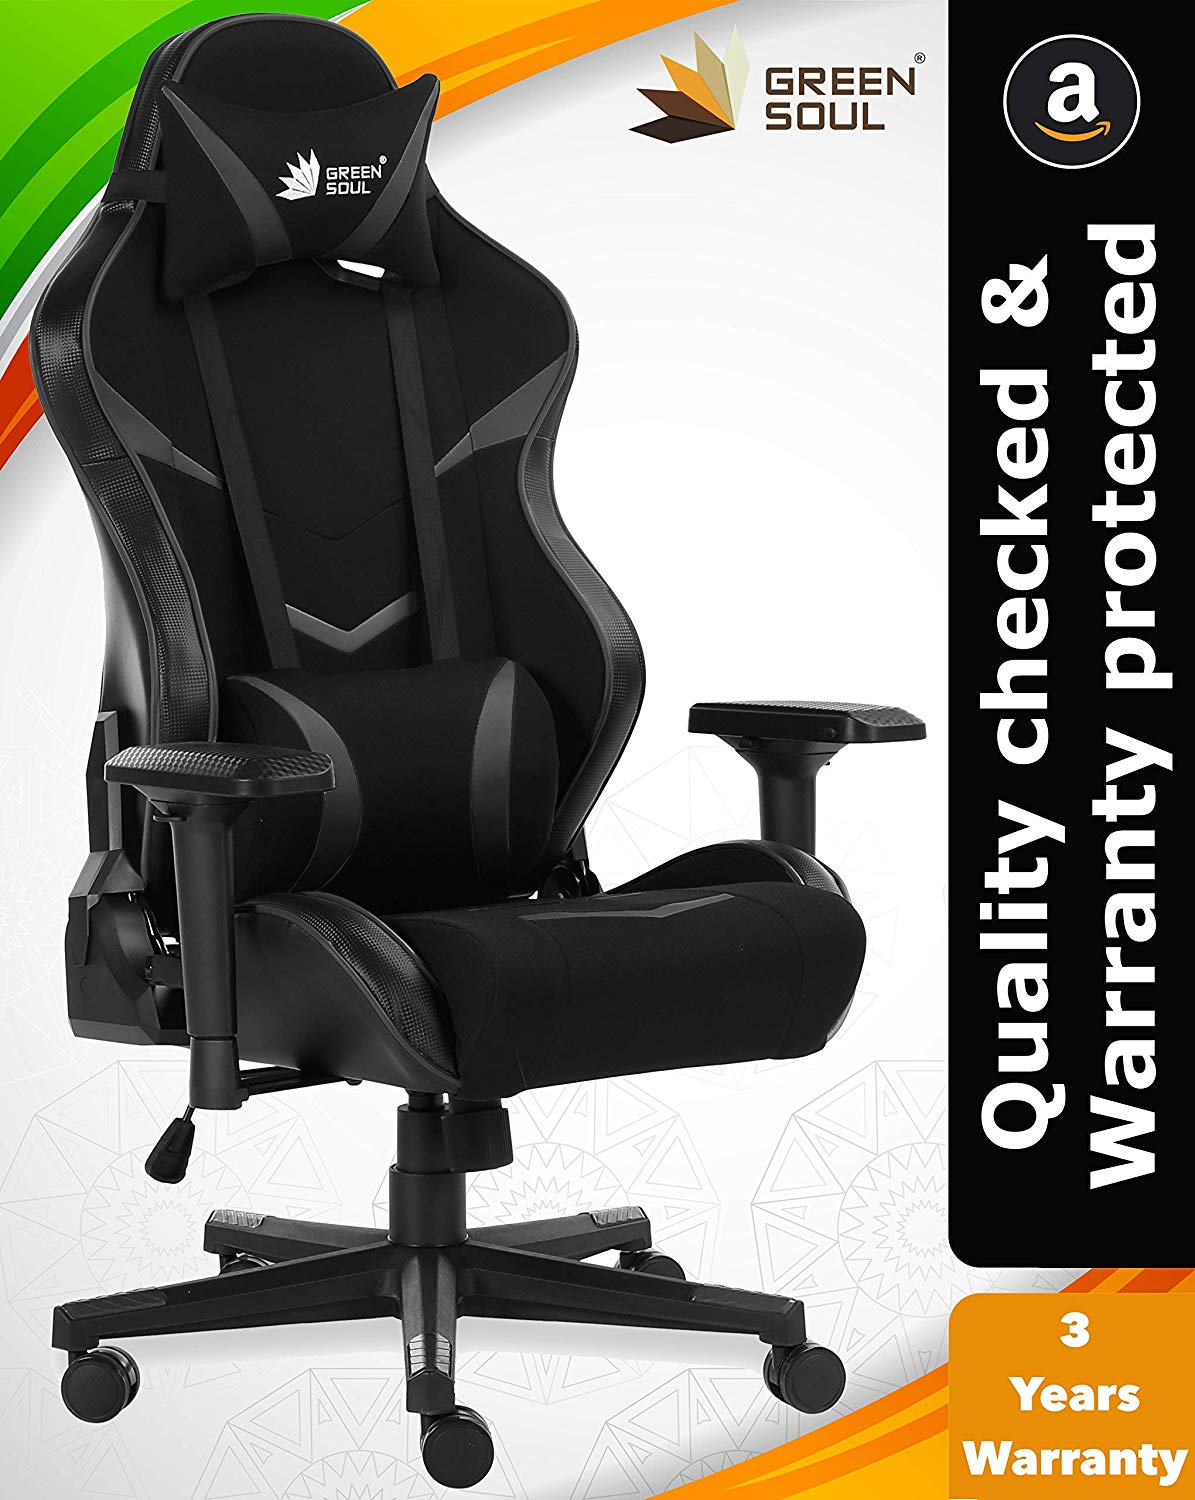 GreenSoul Monster Series Gaming/Ergonomic Chair